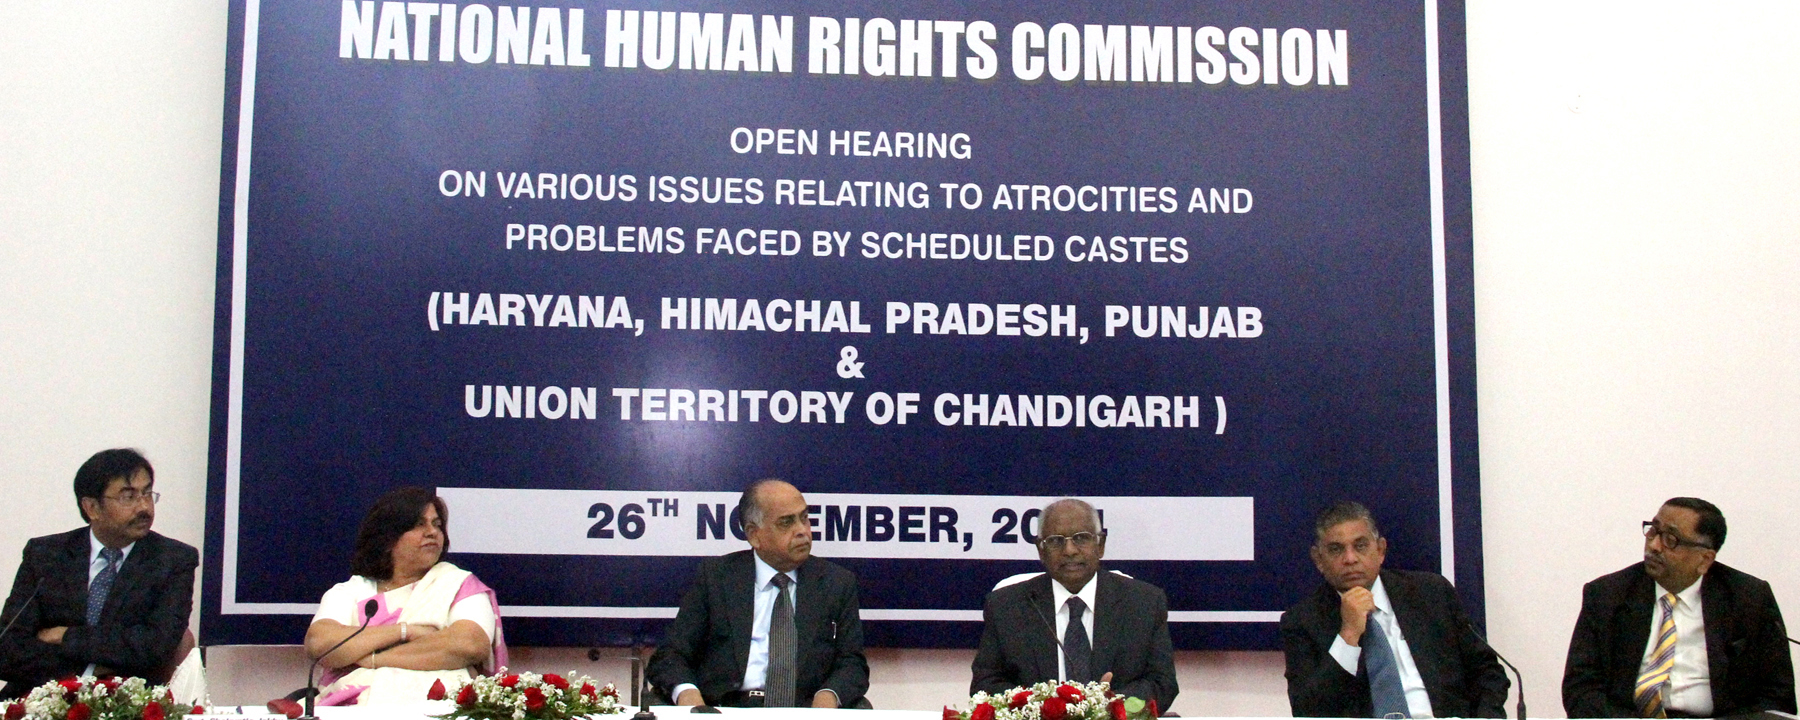 Hon�ble Mr. Justice K.G. Balakrishnan, Chairperson of the National Human Rights Commission addressing at the inauguration of open hearing on various issues relating to atrocities and problems faced by scheduled castes at UT State Guest House, Chandigarh on Wednesday, November 26, 2014.